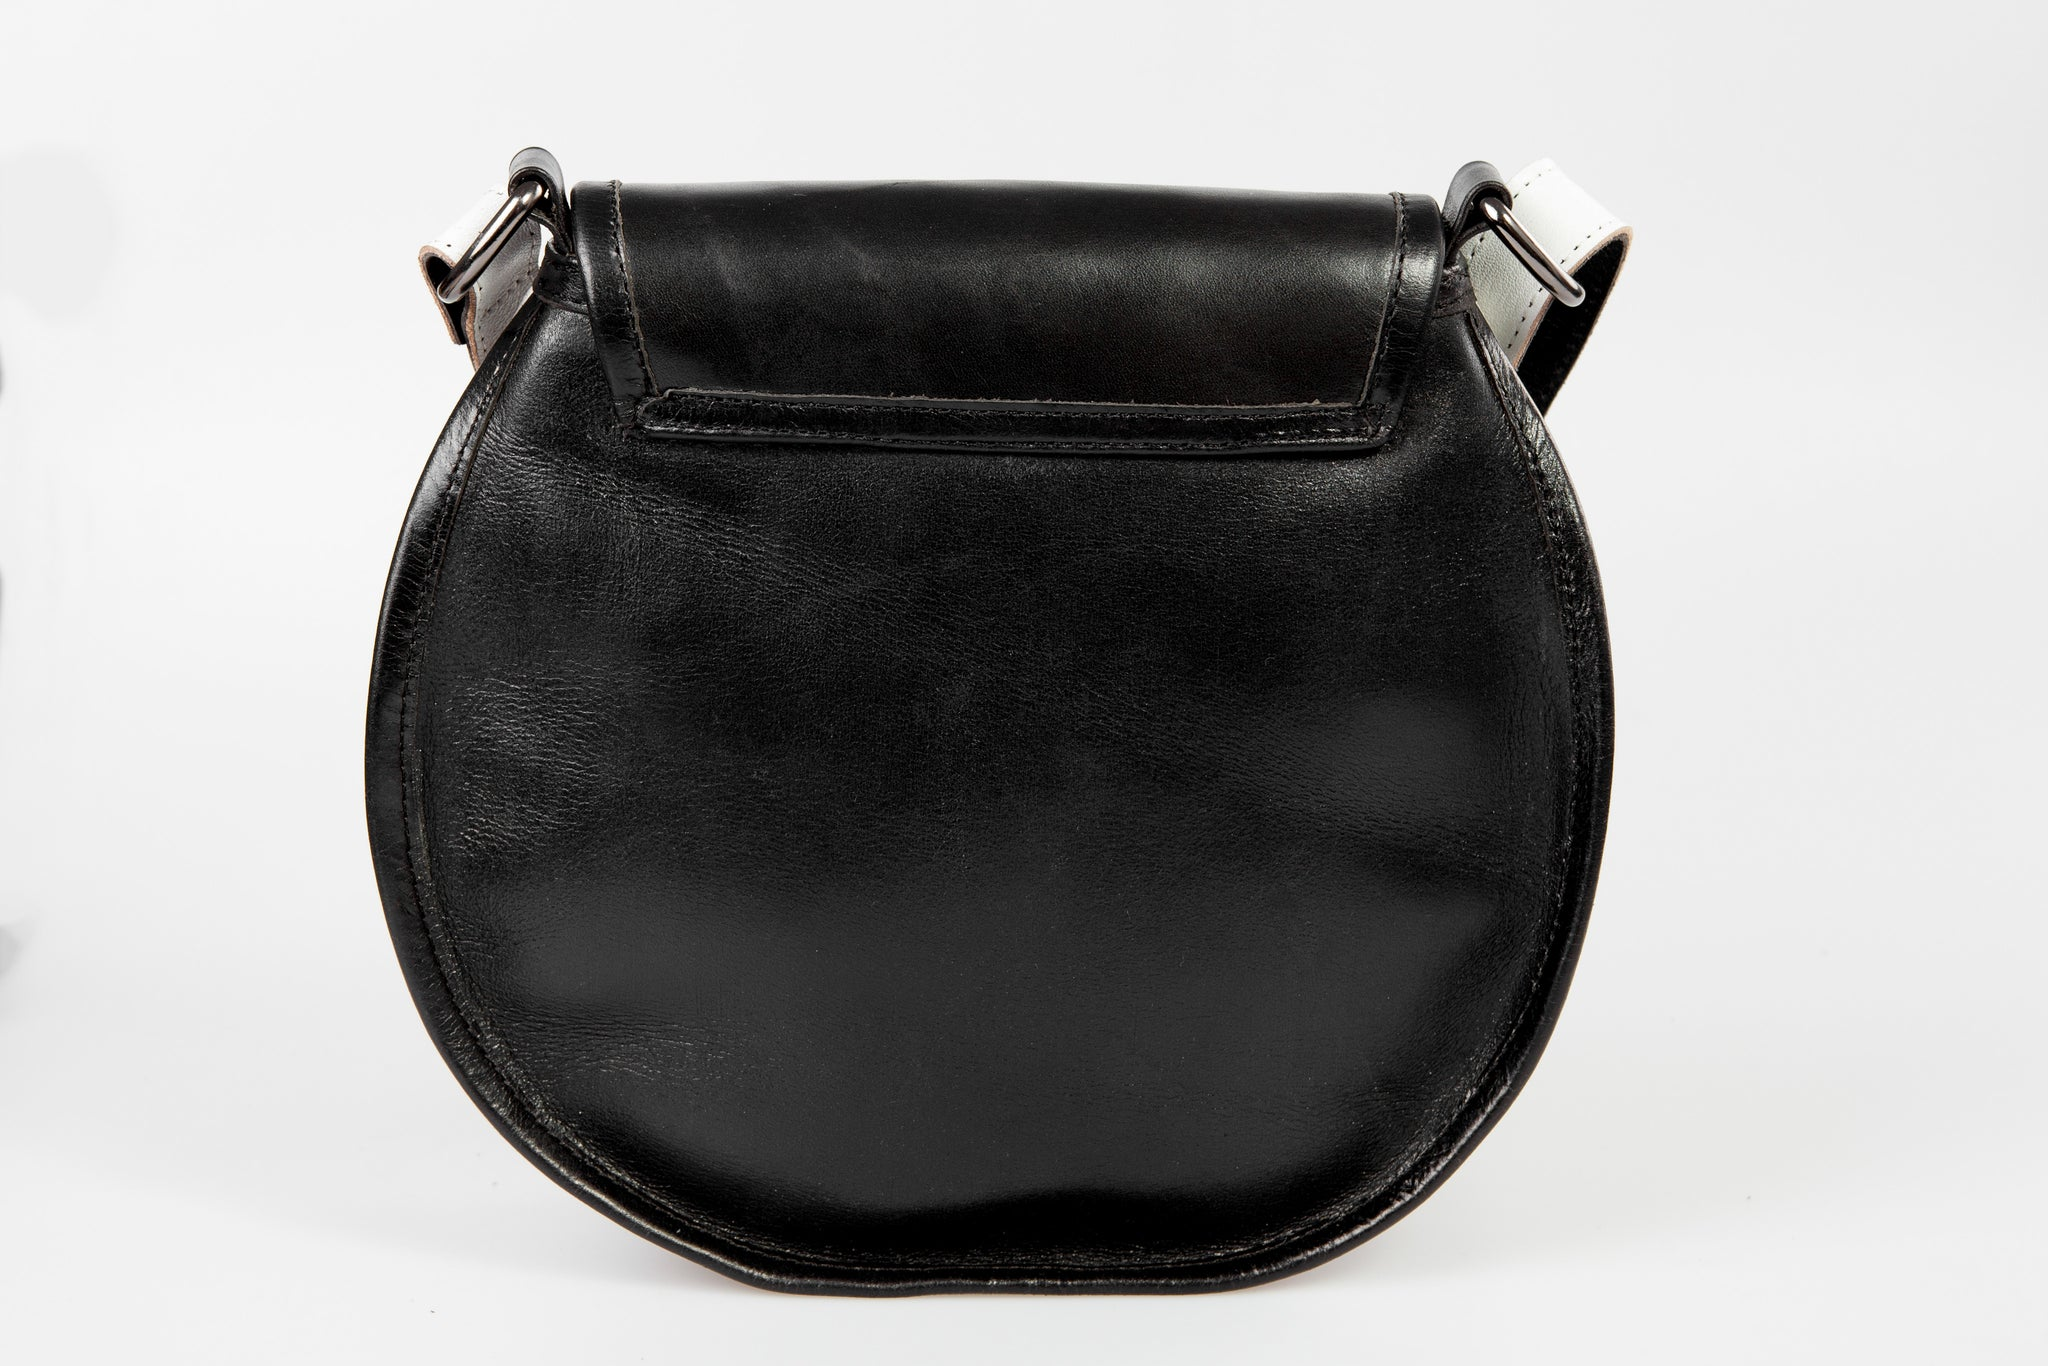 first of June, djawa, handbag, vegetable tanned leather, leather, leather bag, handmade, leather fashion